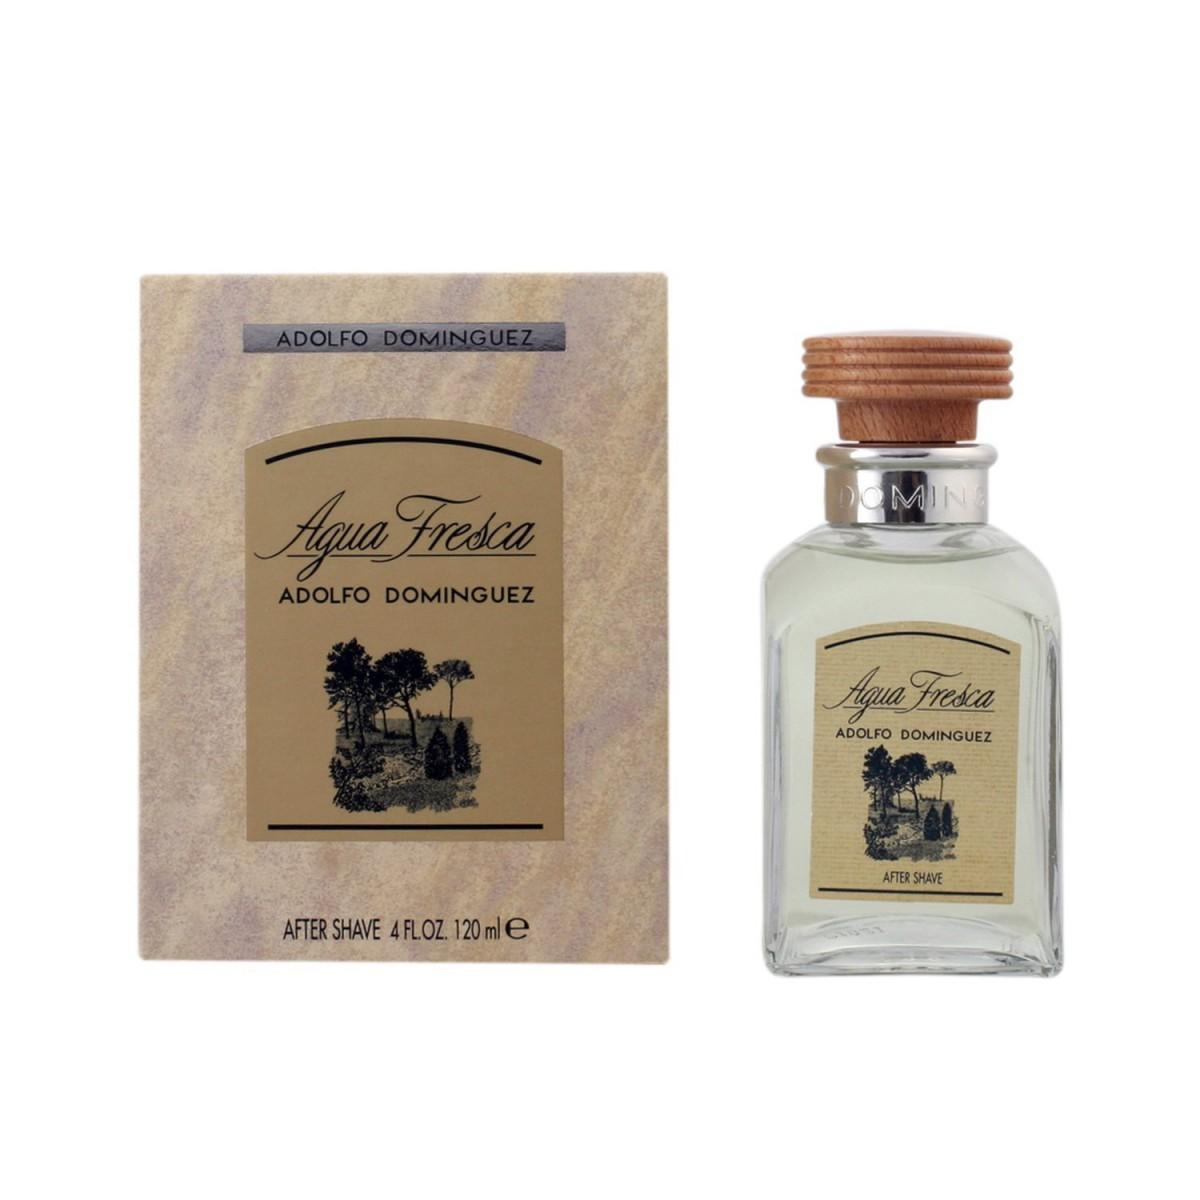 Adolfo dominguez Fresh Water Emulsion 120 ml After Shave